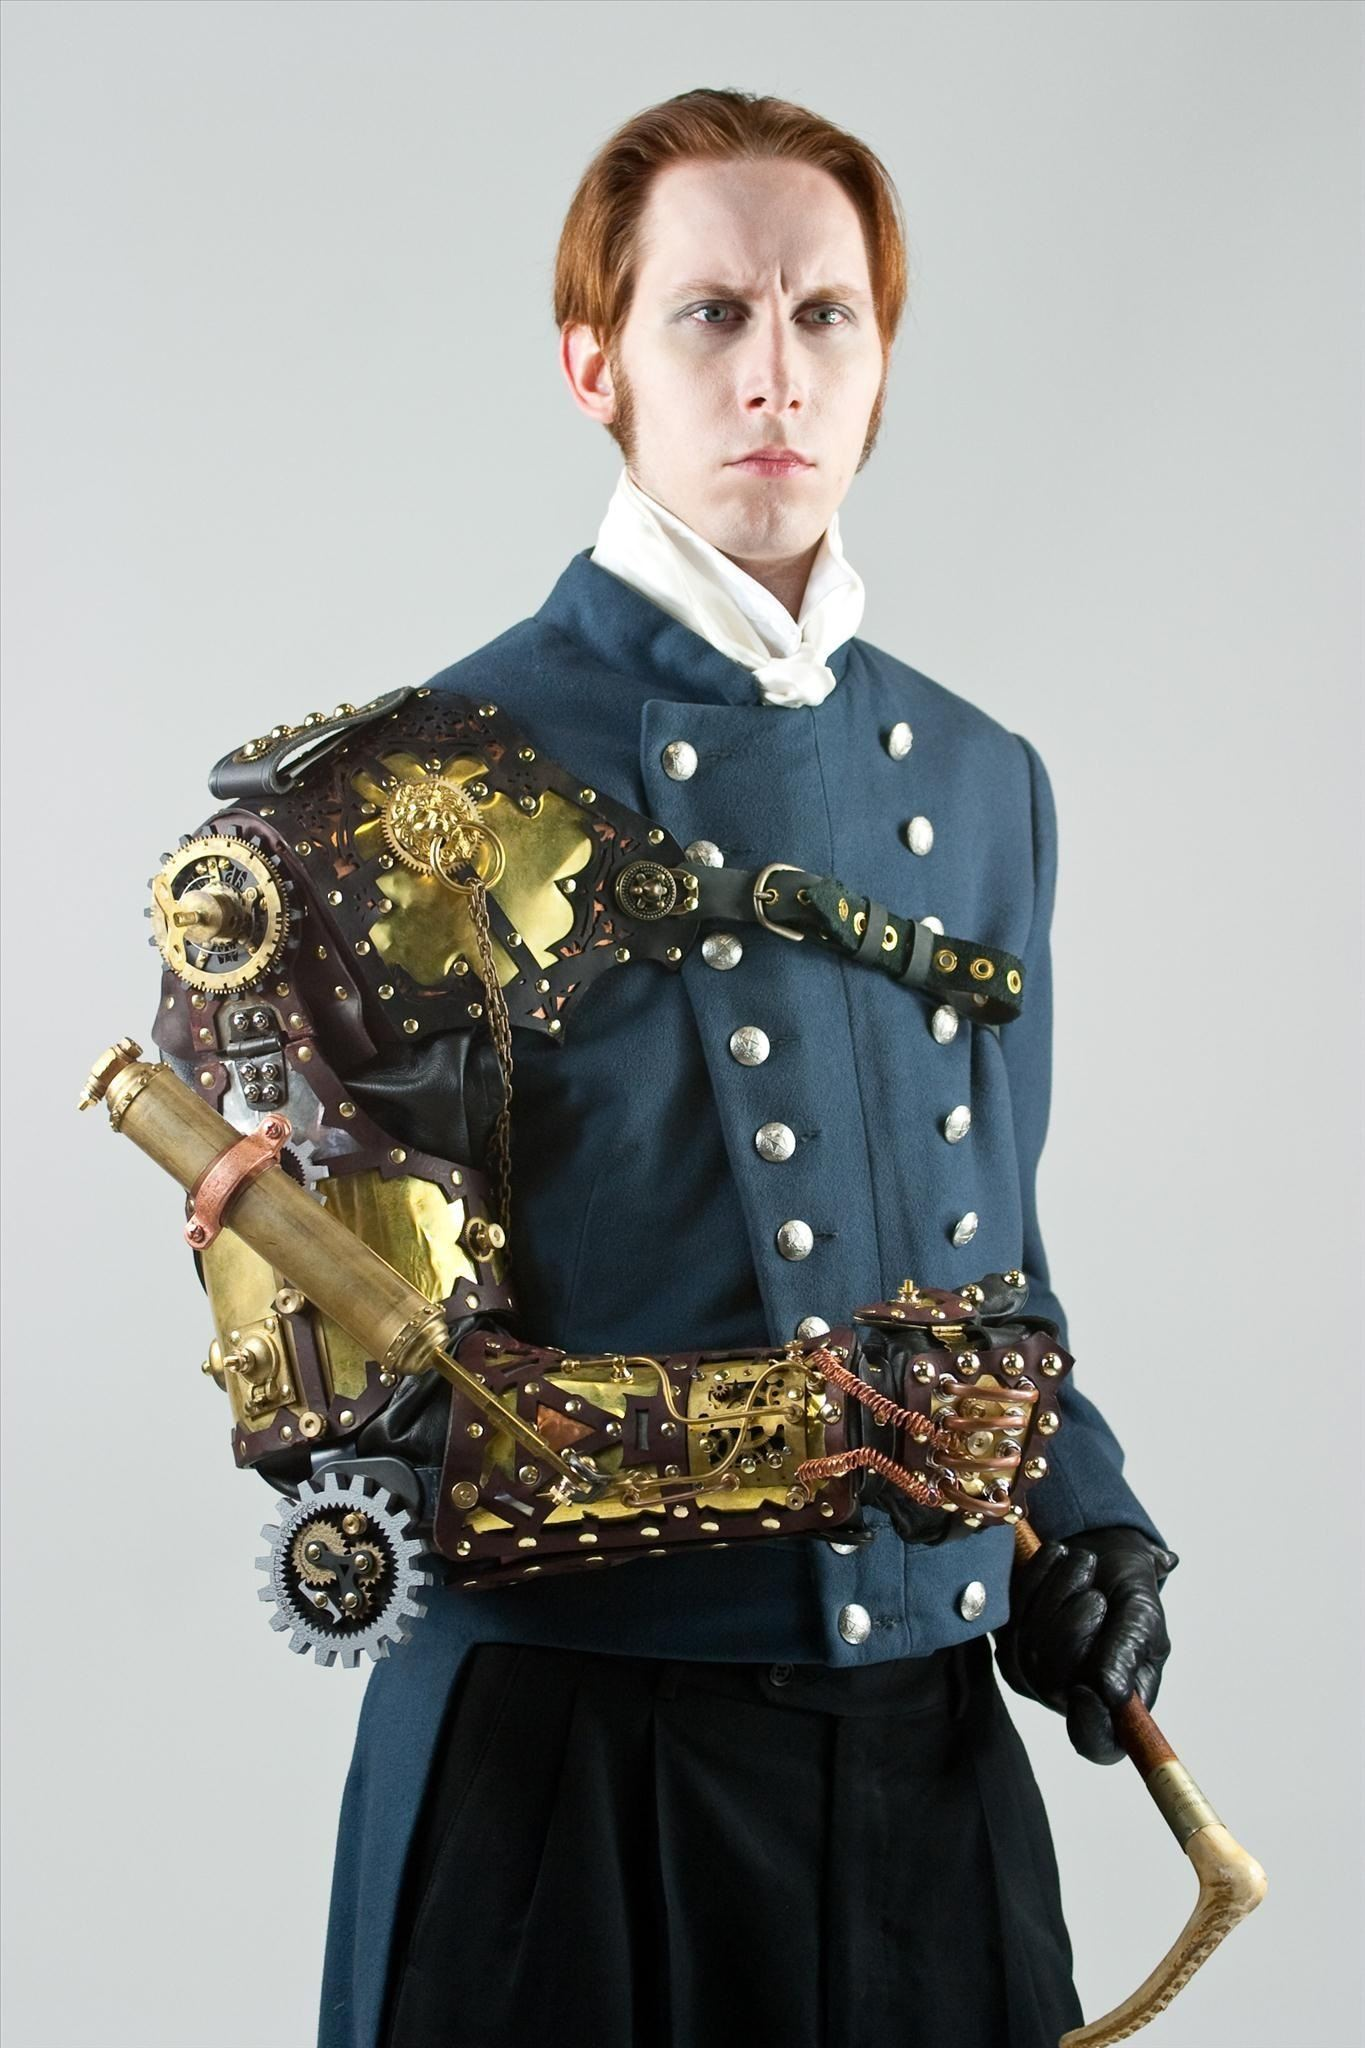 Steampunk R&D Podcast 01: Thomas Willeford on Creating His Empire